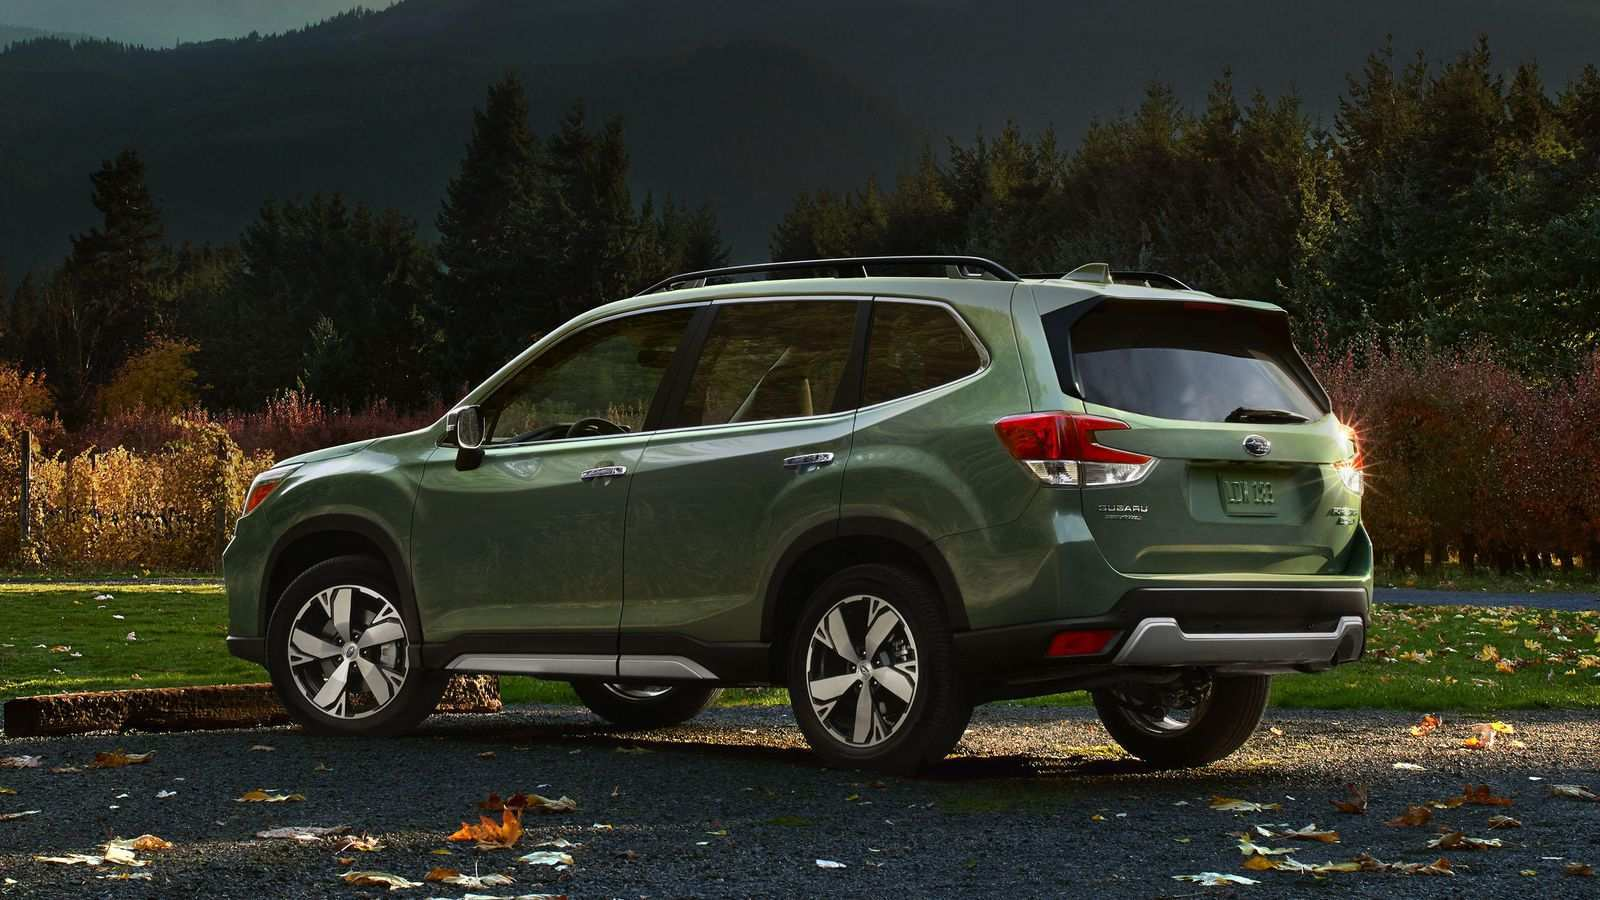 86 The Best 2019 Subaru Forester Research New